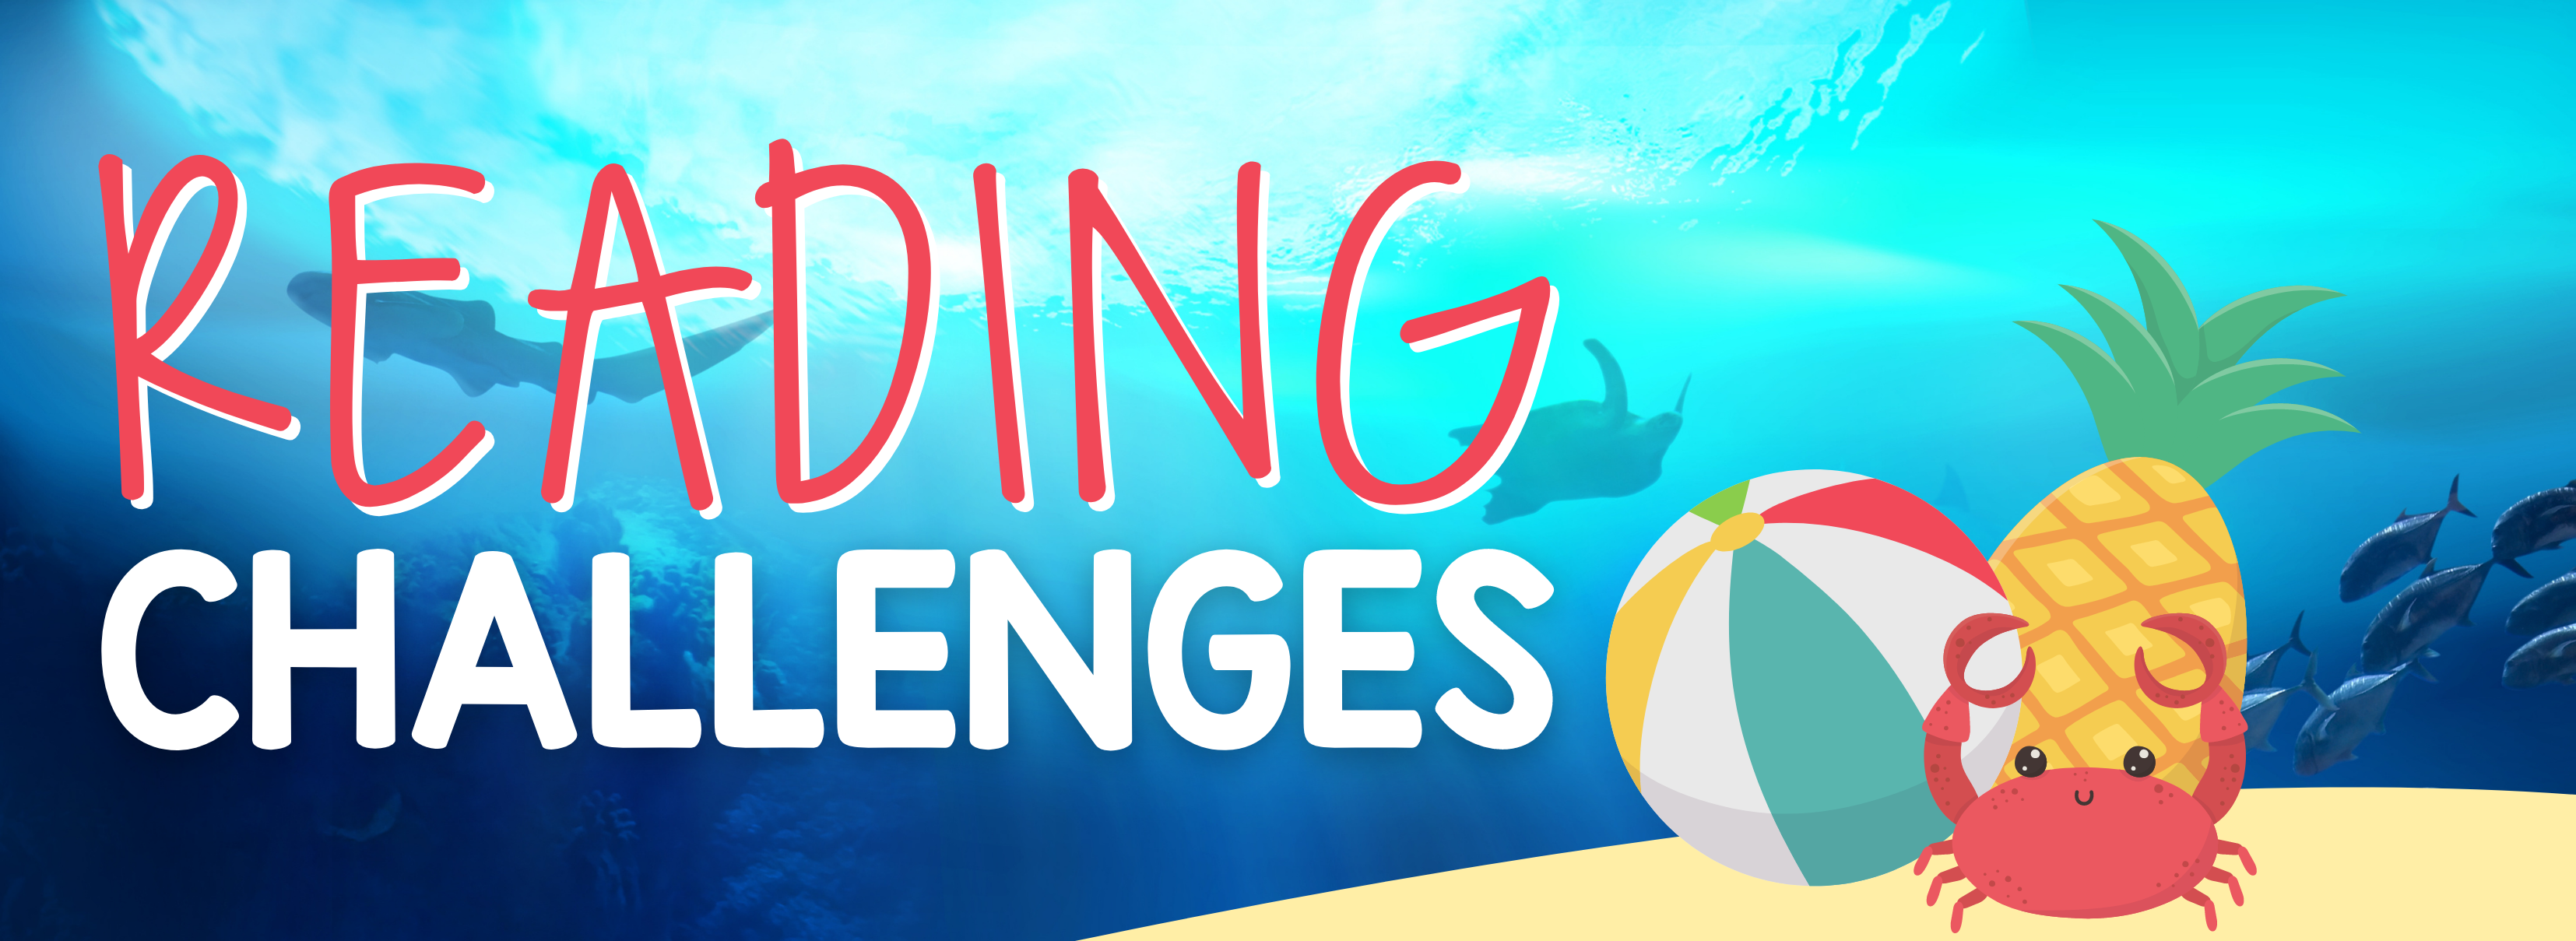 Reading Challenges Header